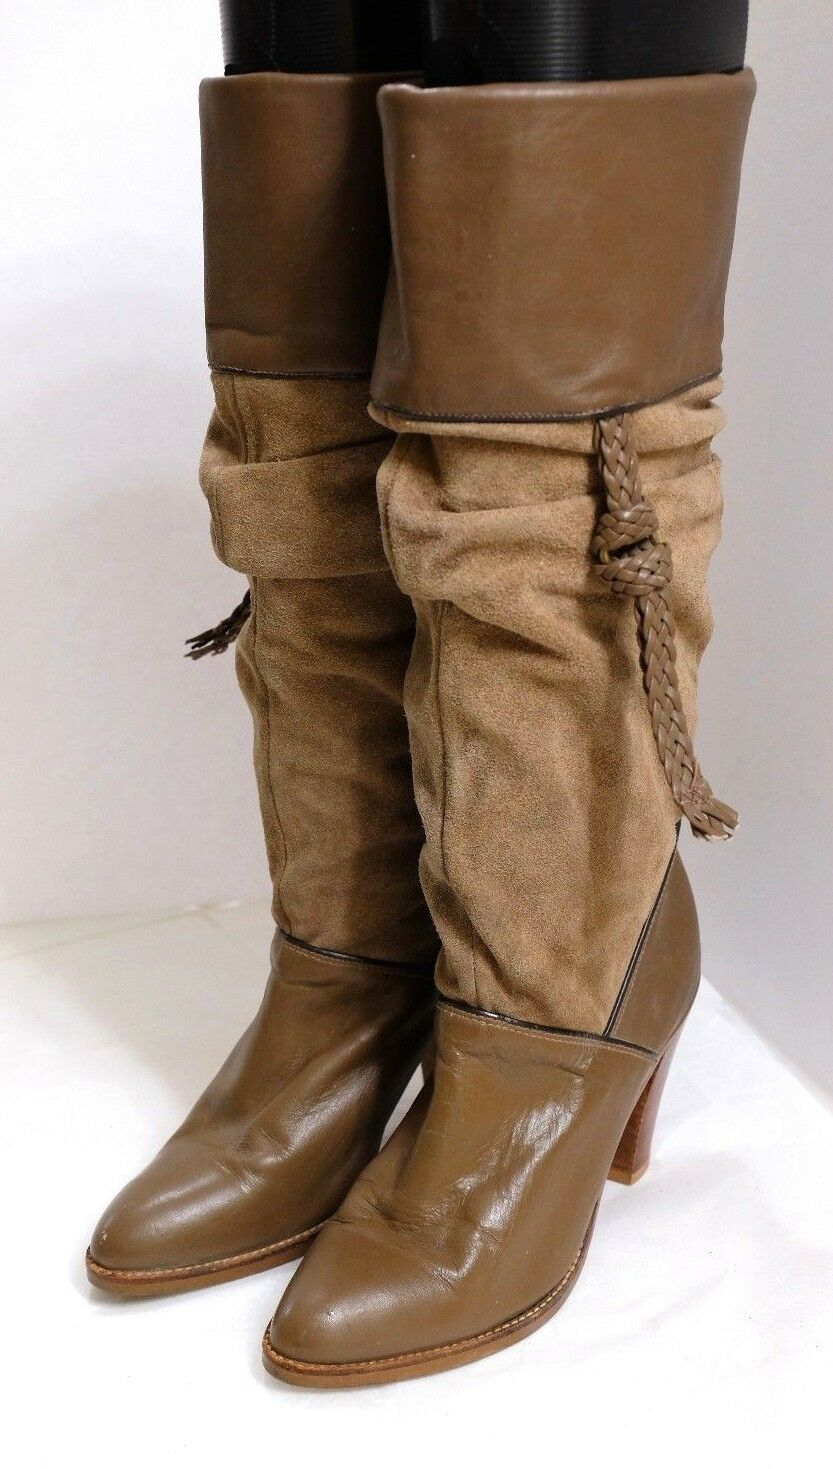 VGUC Dingo Women's Size 5.5M Brown Suede & Leather Knee High Western Boots